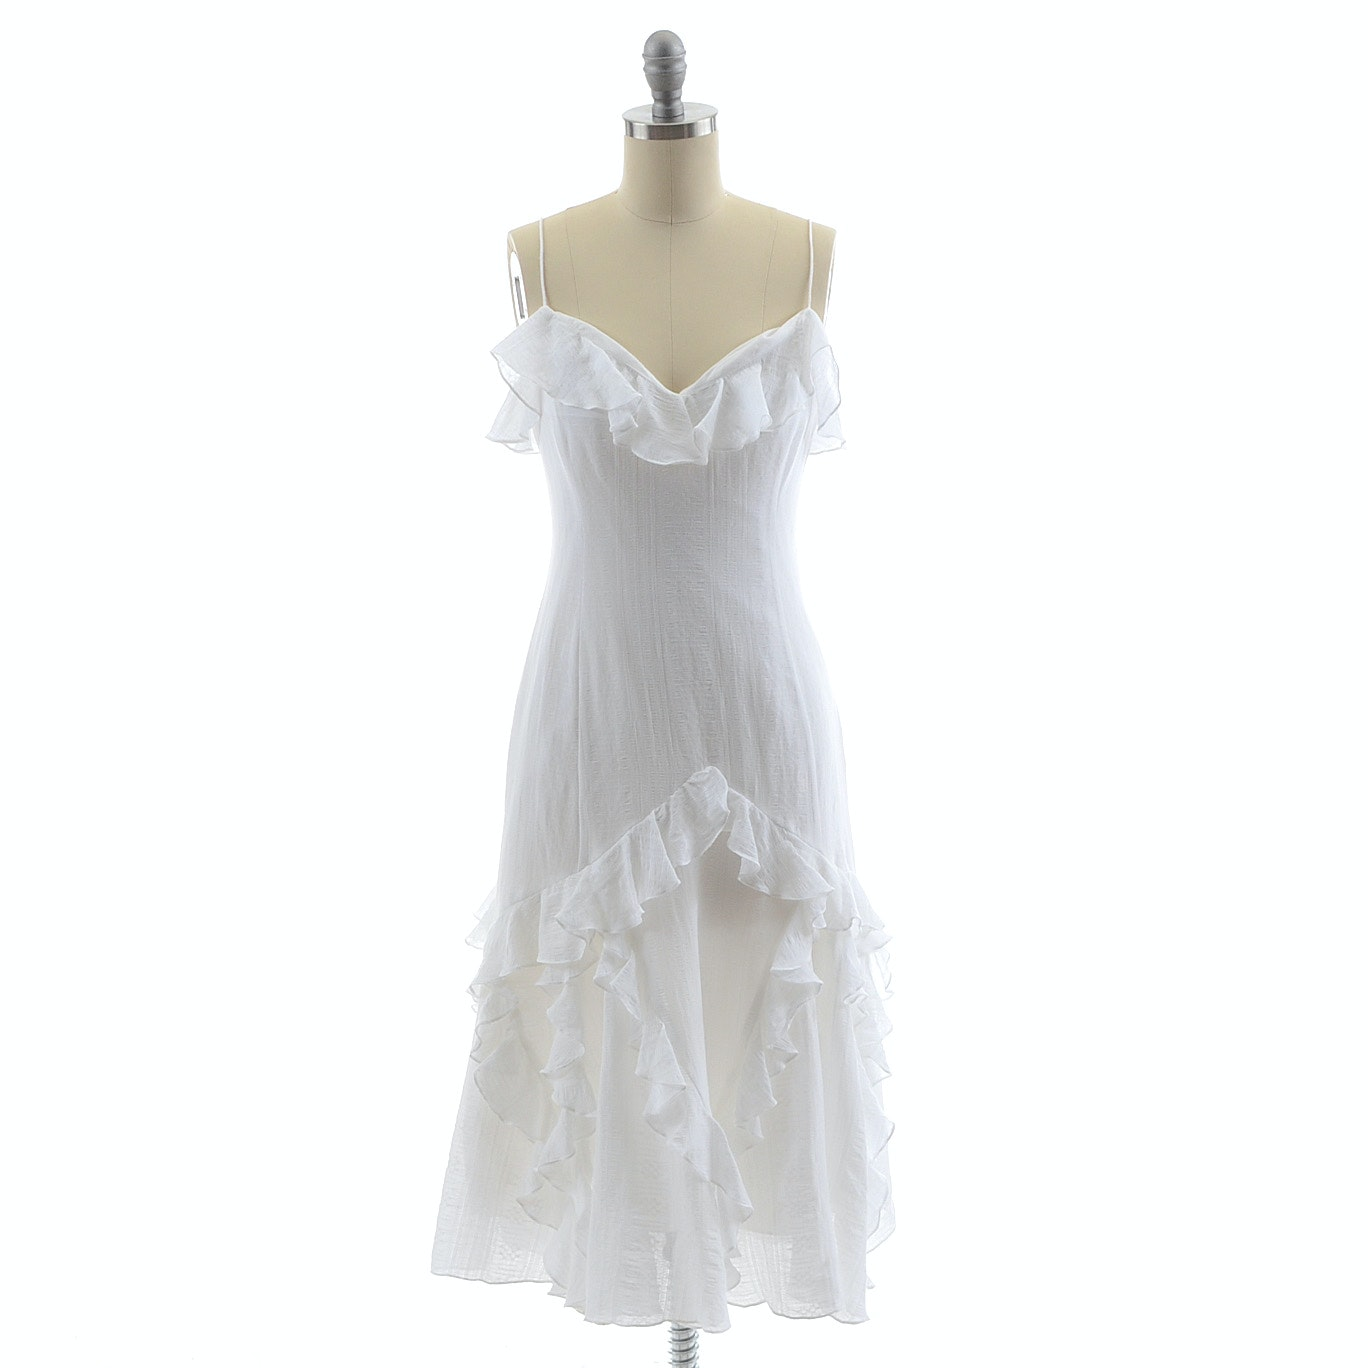 Ralph Lauren White Cotton Sleeveless Dress with Ruffles